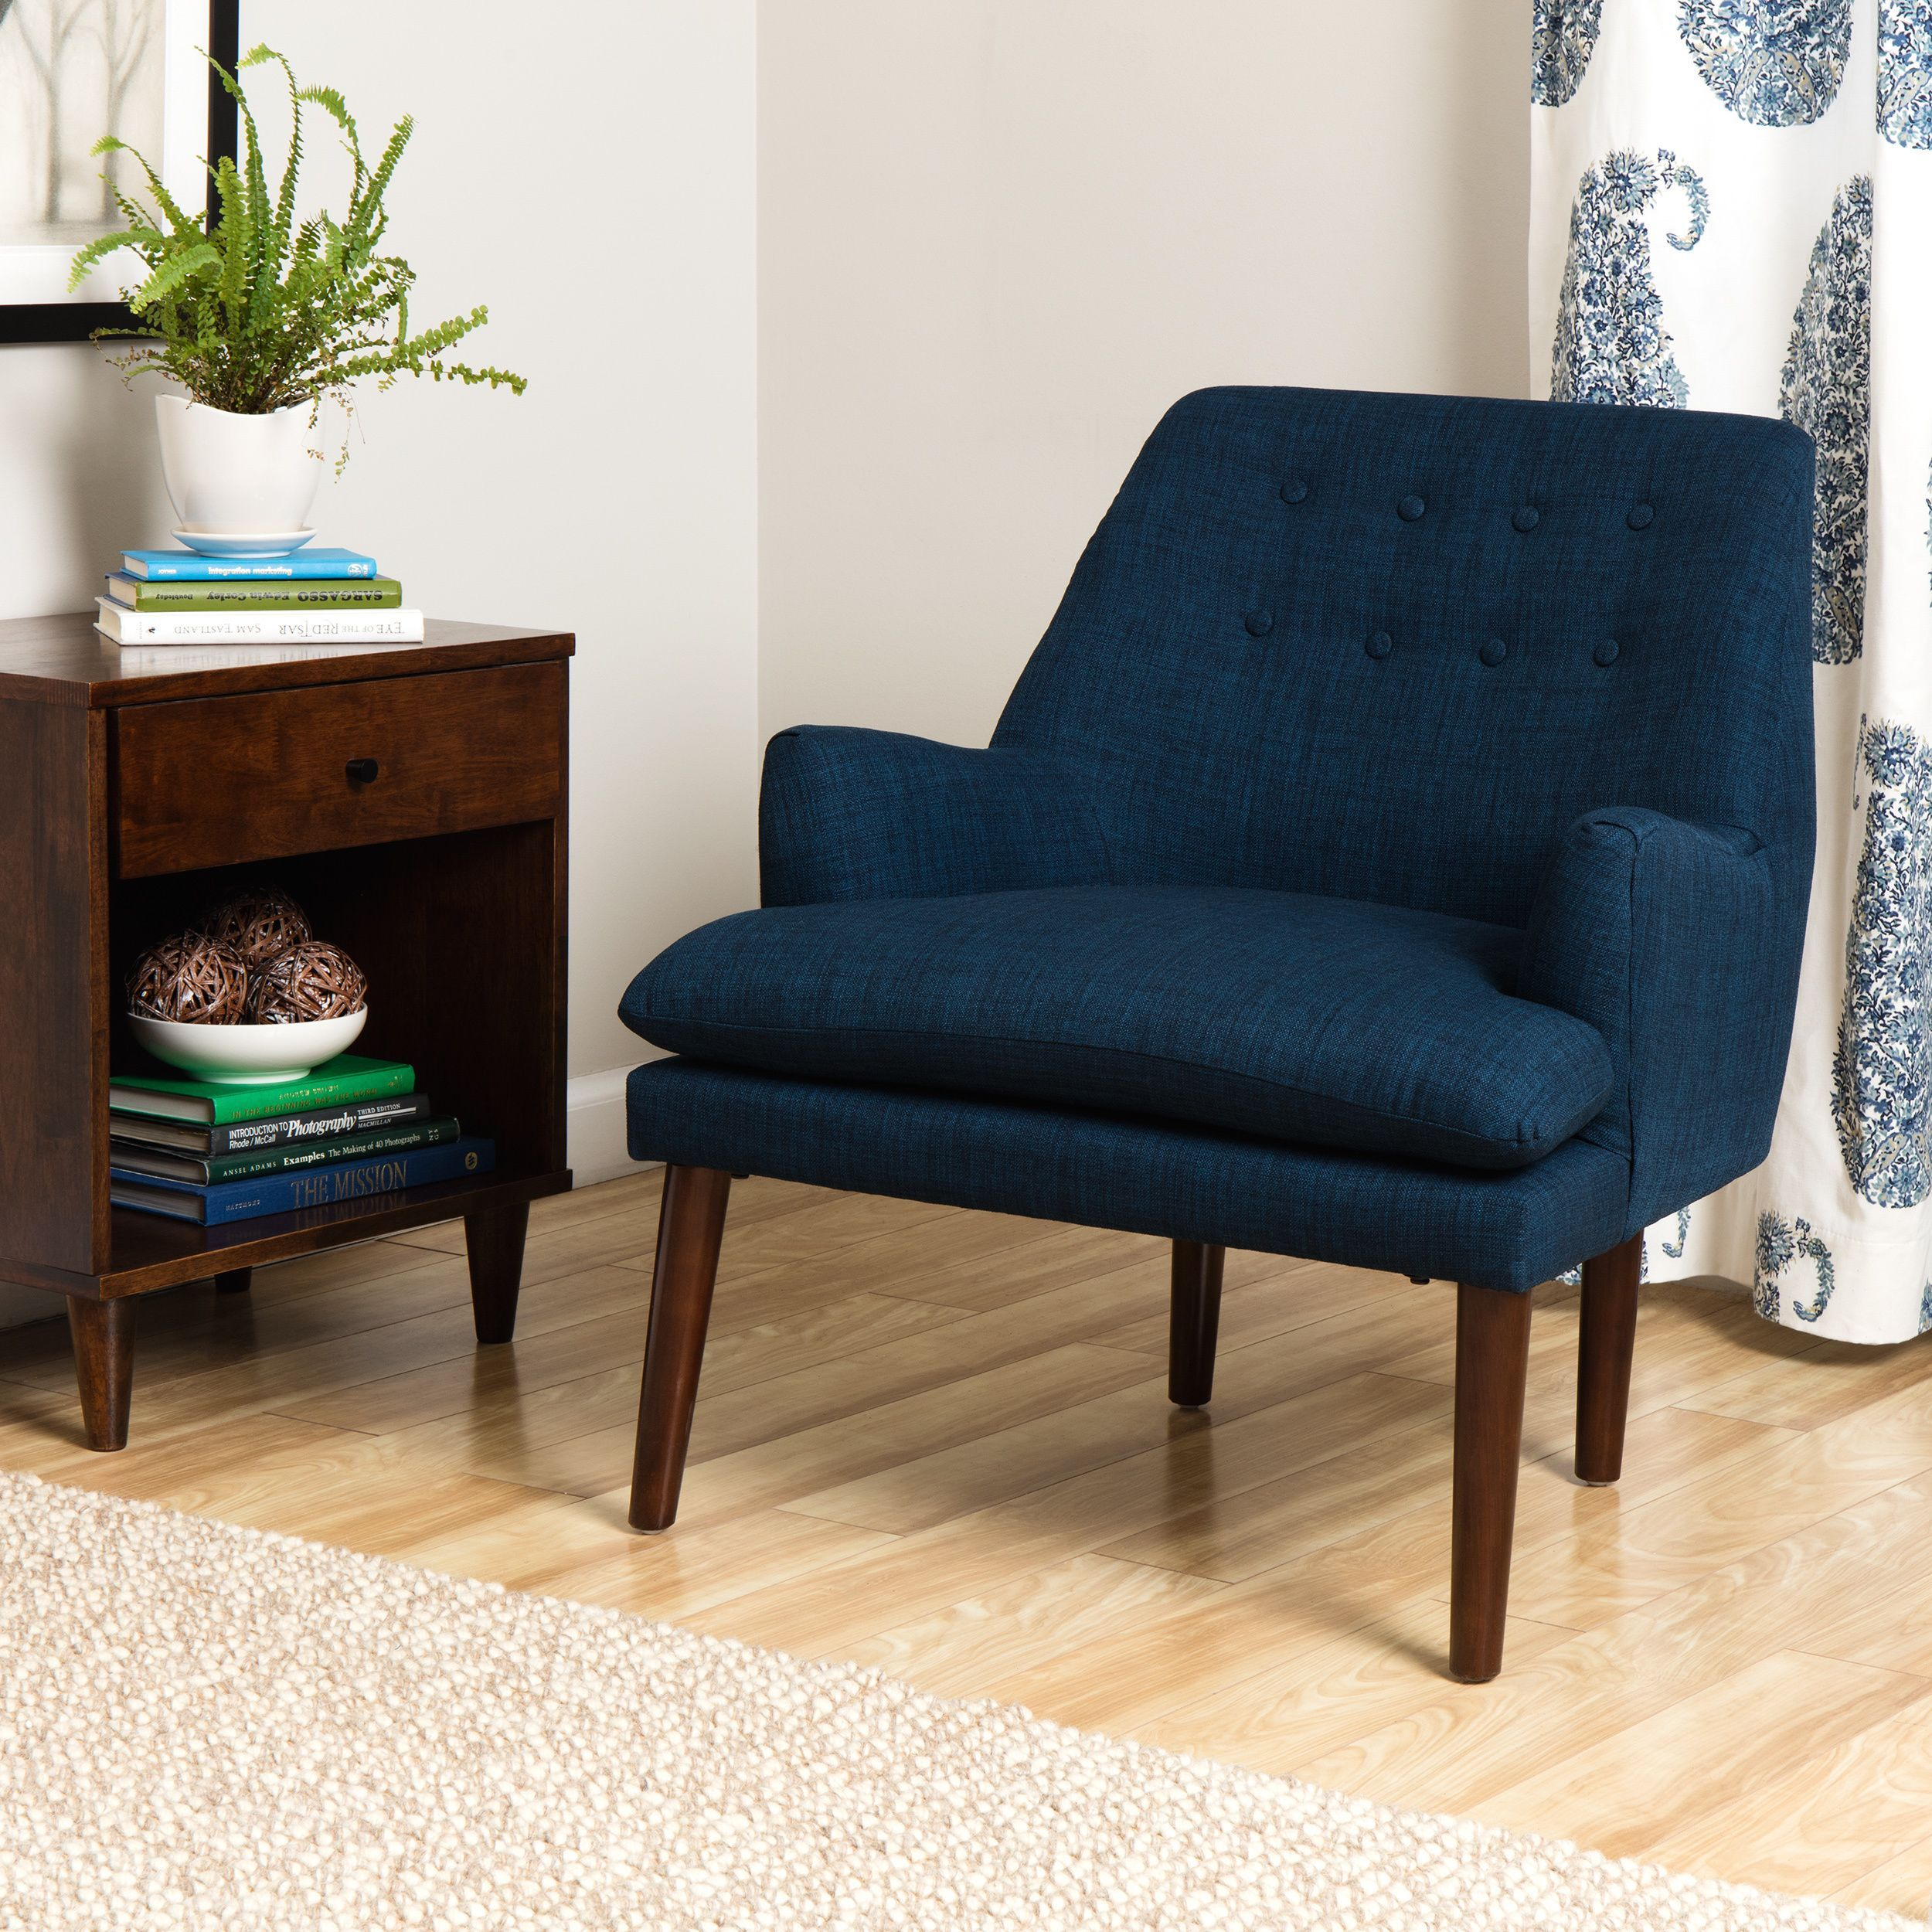 If Transitional Is Your Style, This Button Tufted Chair Is The Perfect  Choice. With A Retro Inspired Shape, This Accent Chair Is Made With A Navy  Colored ...